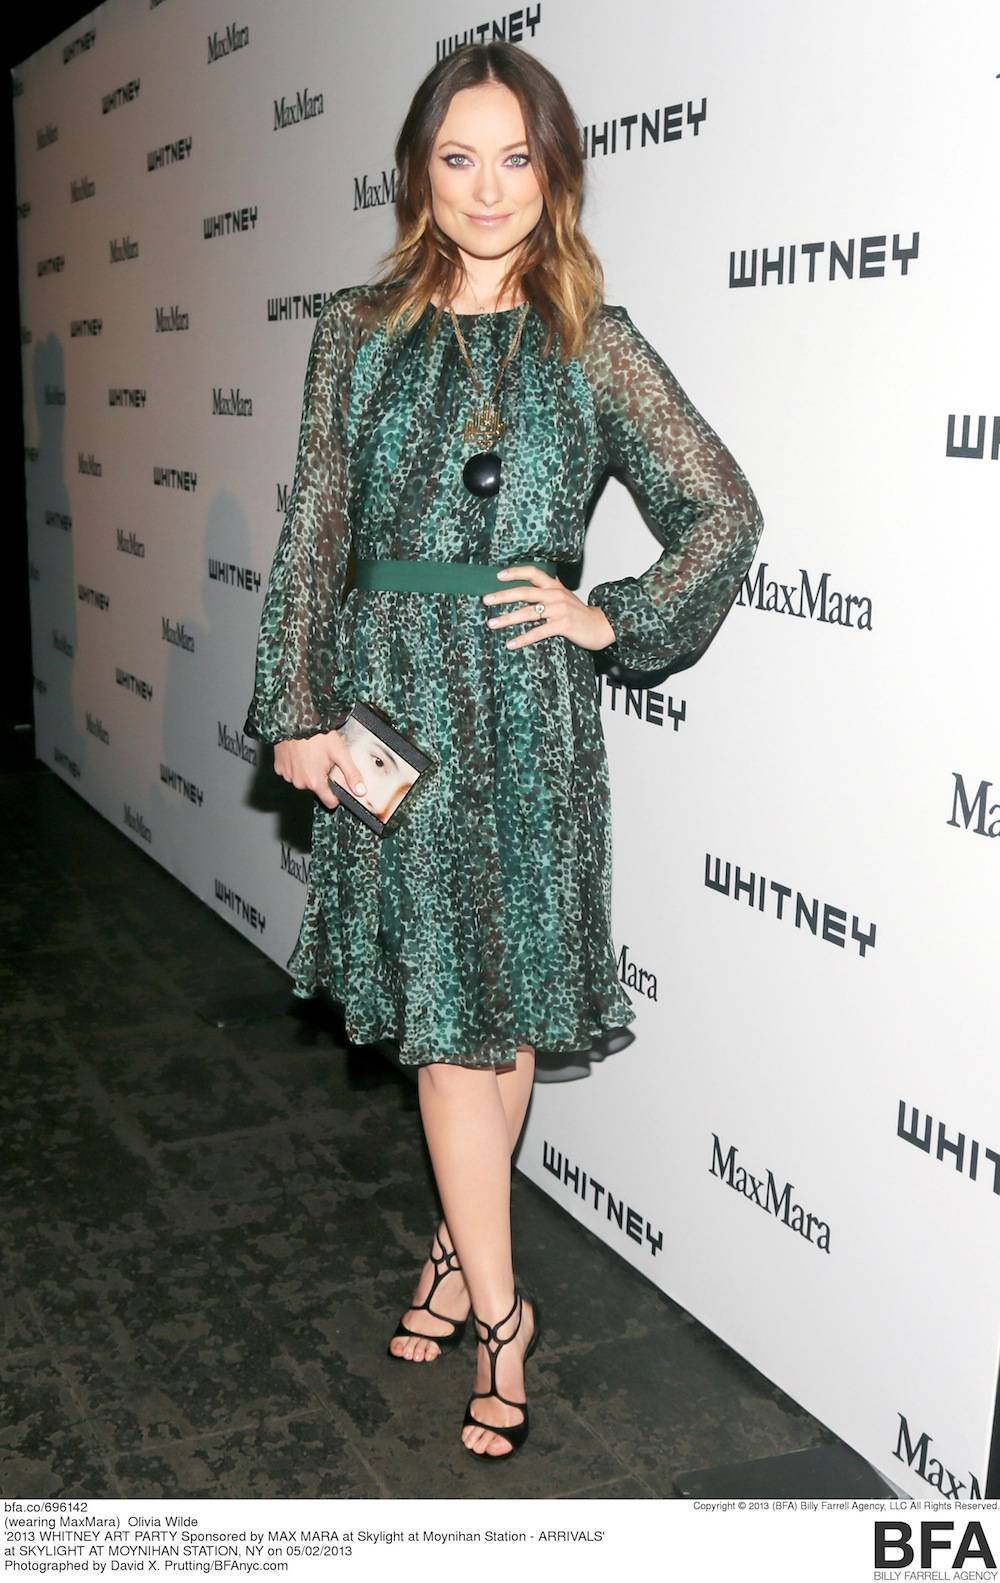 2013 WHITNEY ART PARTY Sponsored by MAX MARA at Skylight at Moynihan Station - ARRIVALS